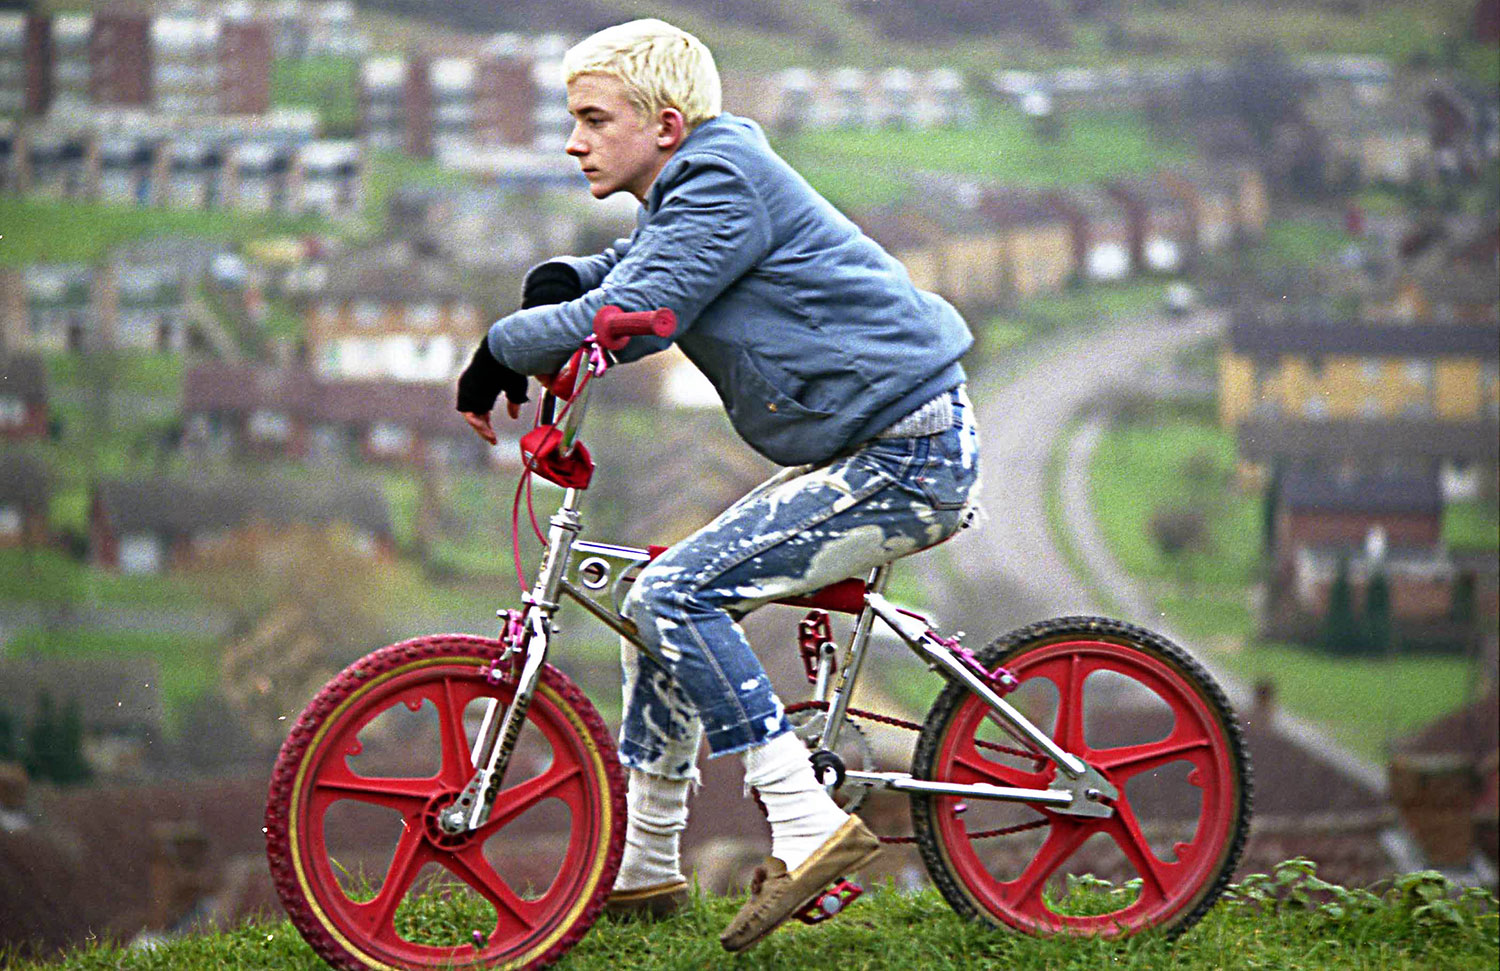 Gavin Watson, Neville Watson blond with BMX, from Oh! What Fun We Had